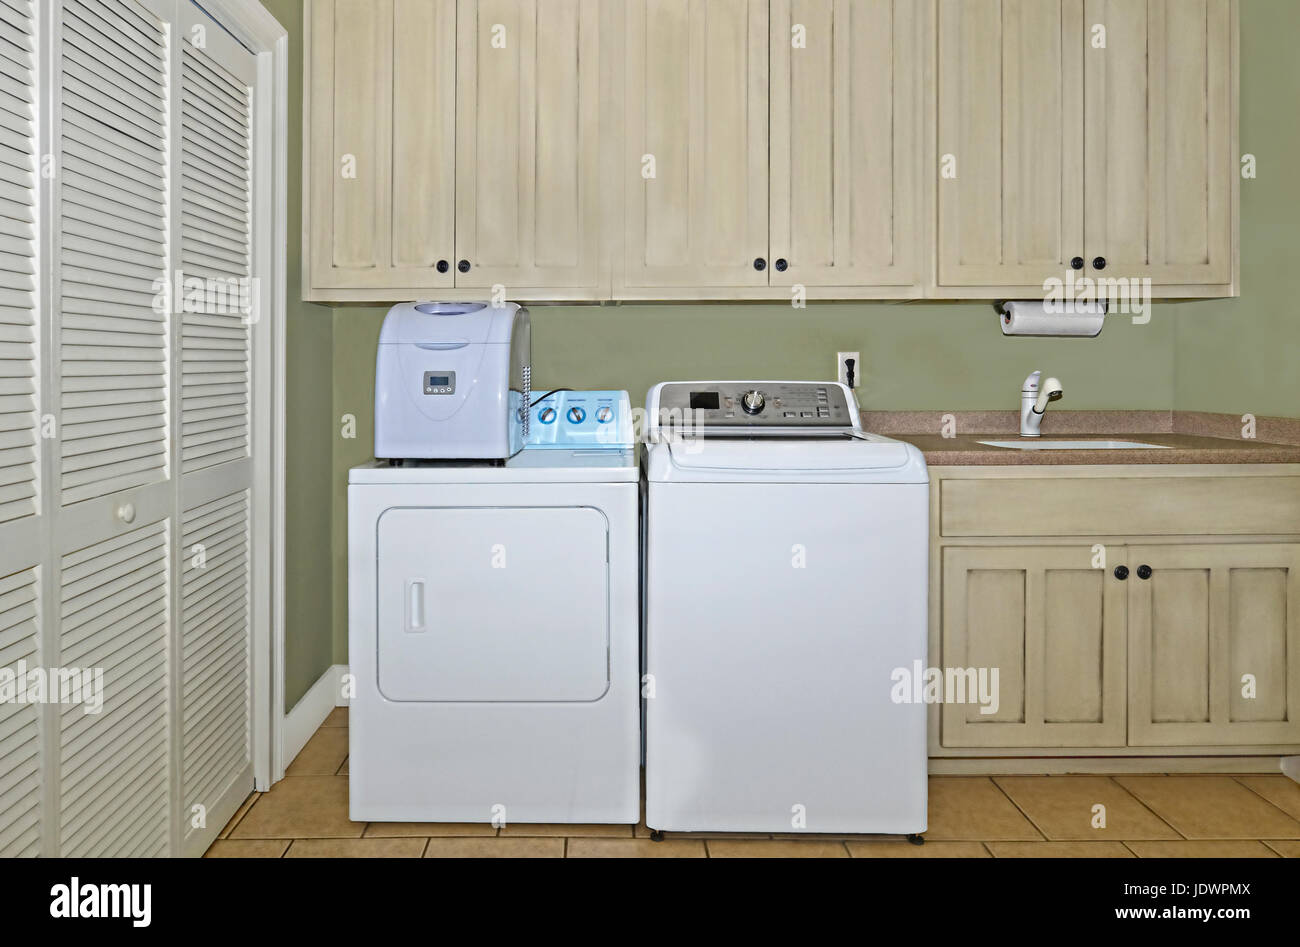 A laundry room with washer,dryer,ice maker,sink,cabinets,and a ...